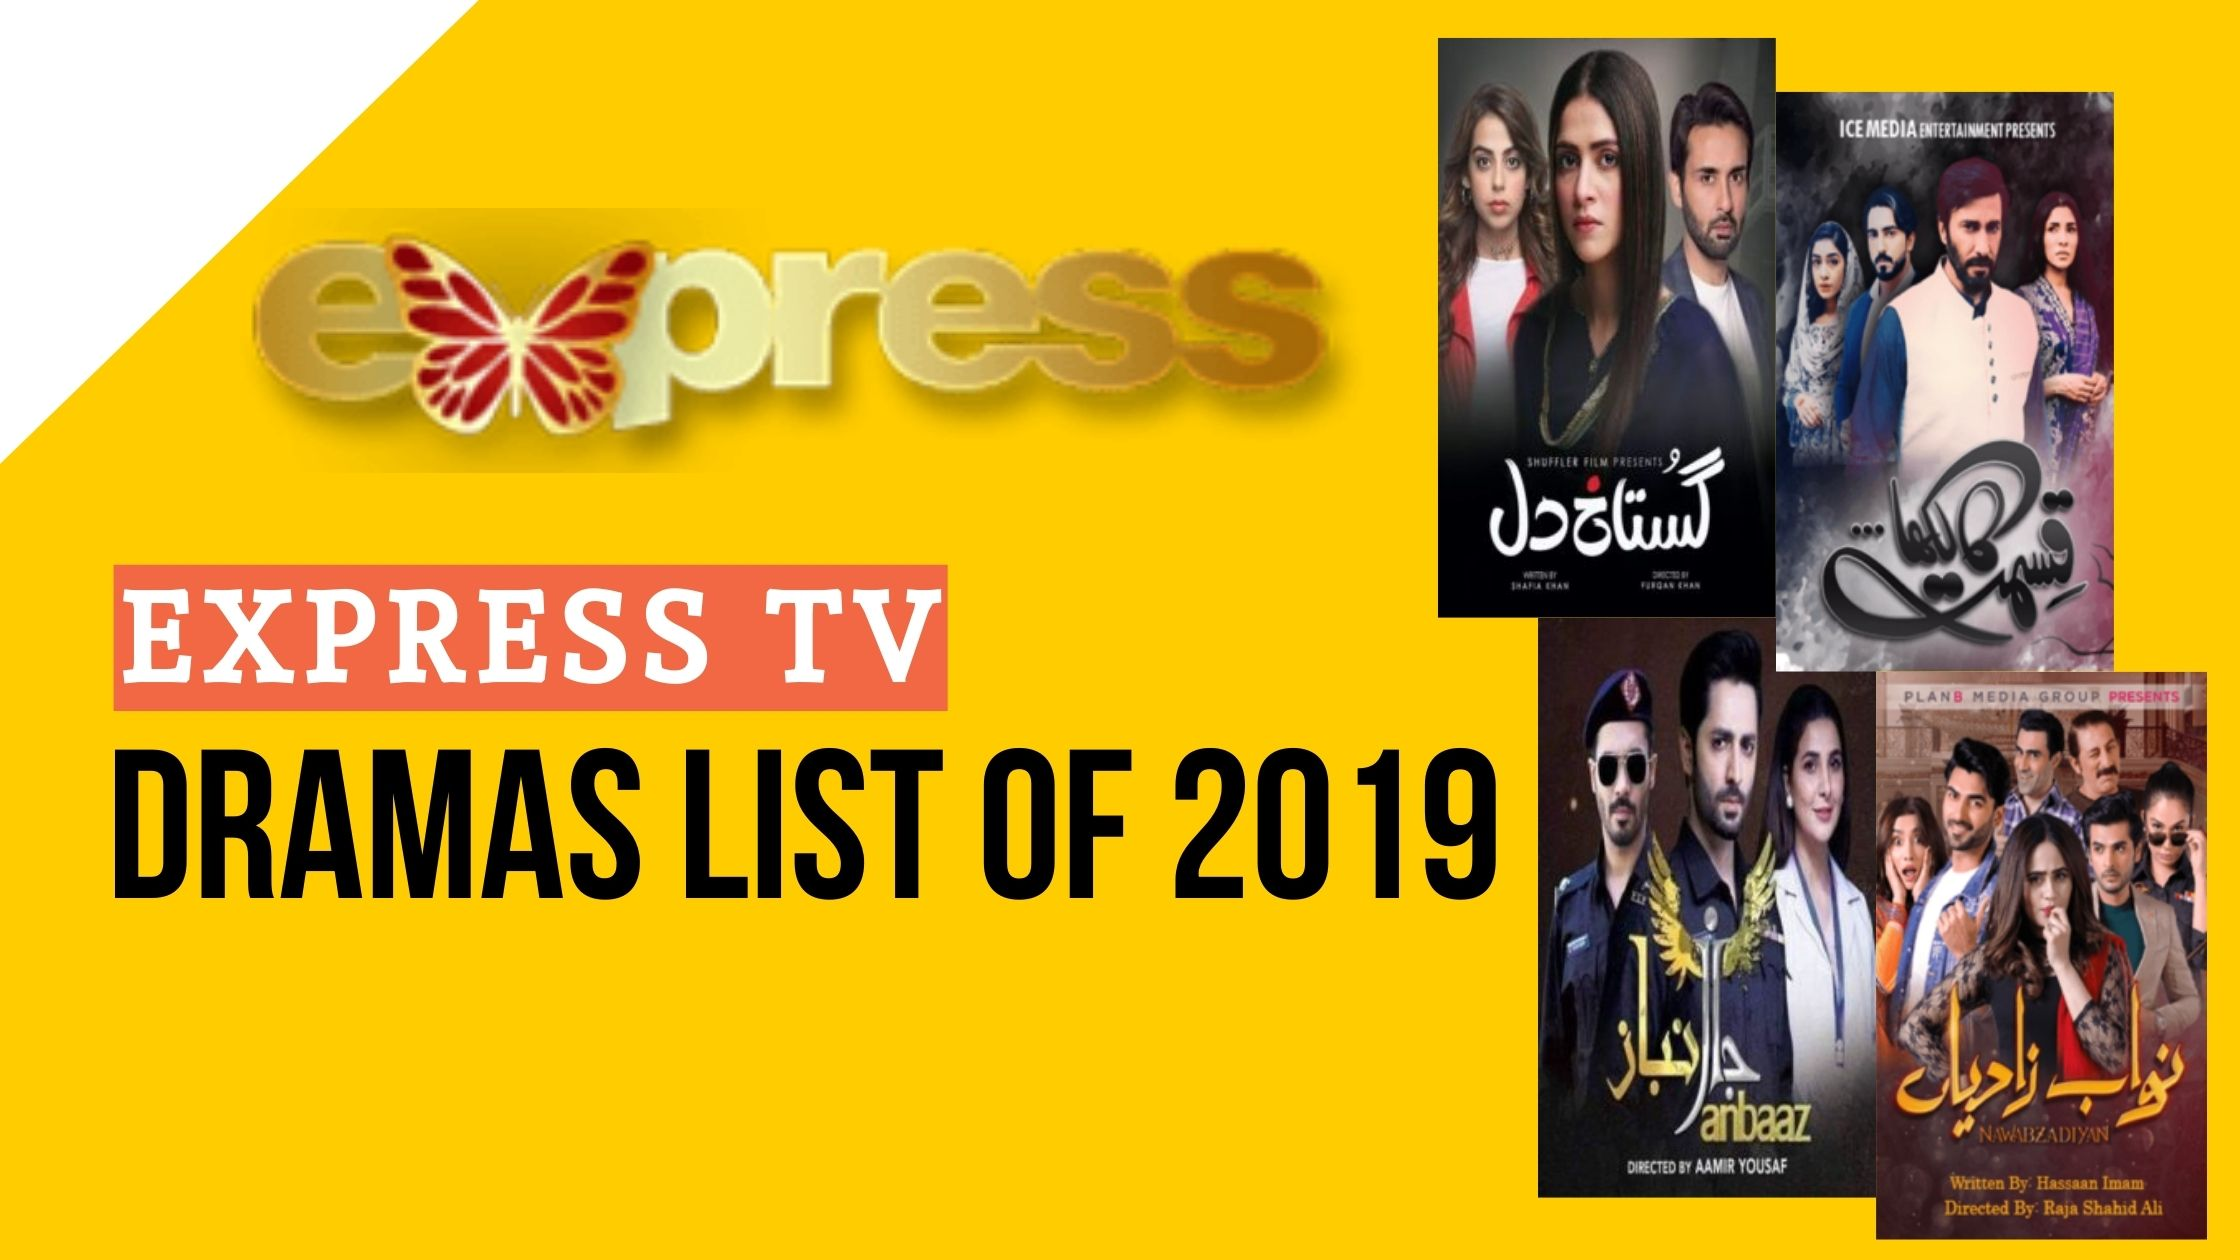 Express TV Dramas List of 2019